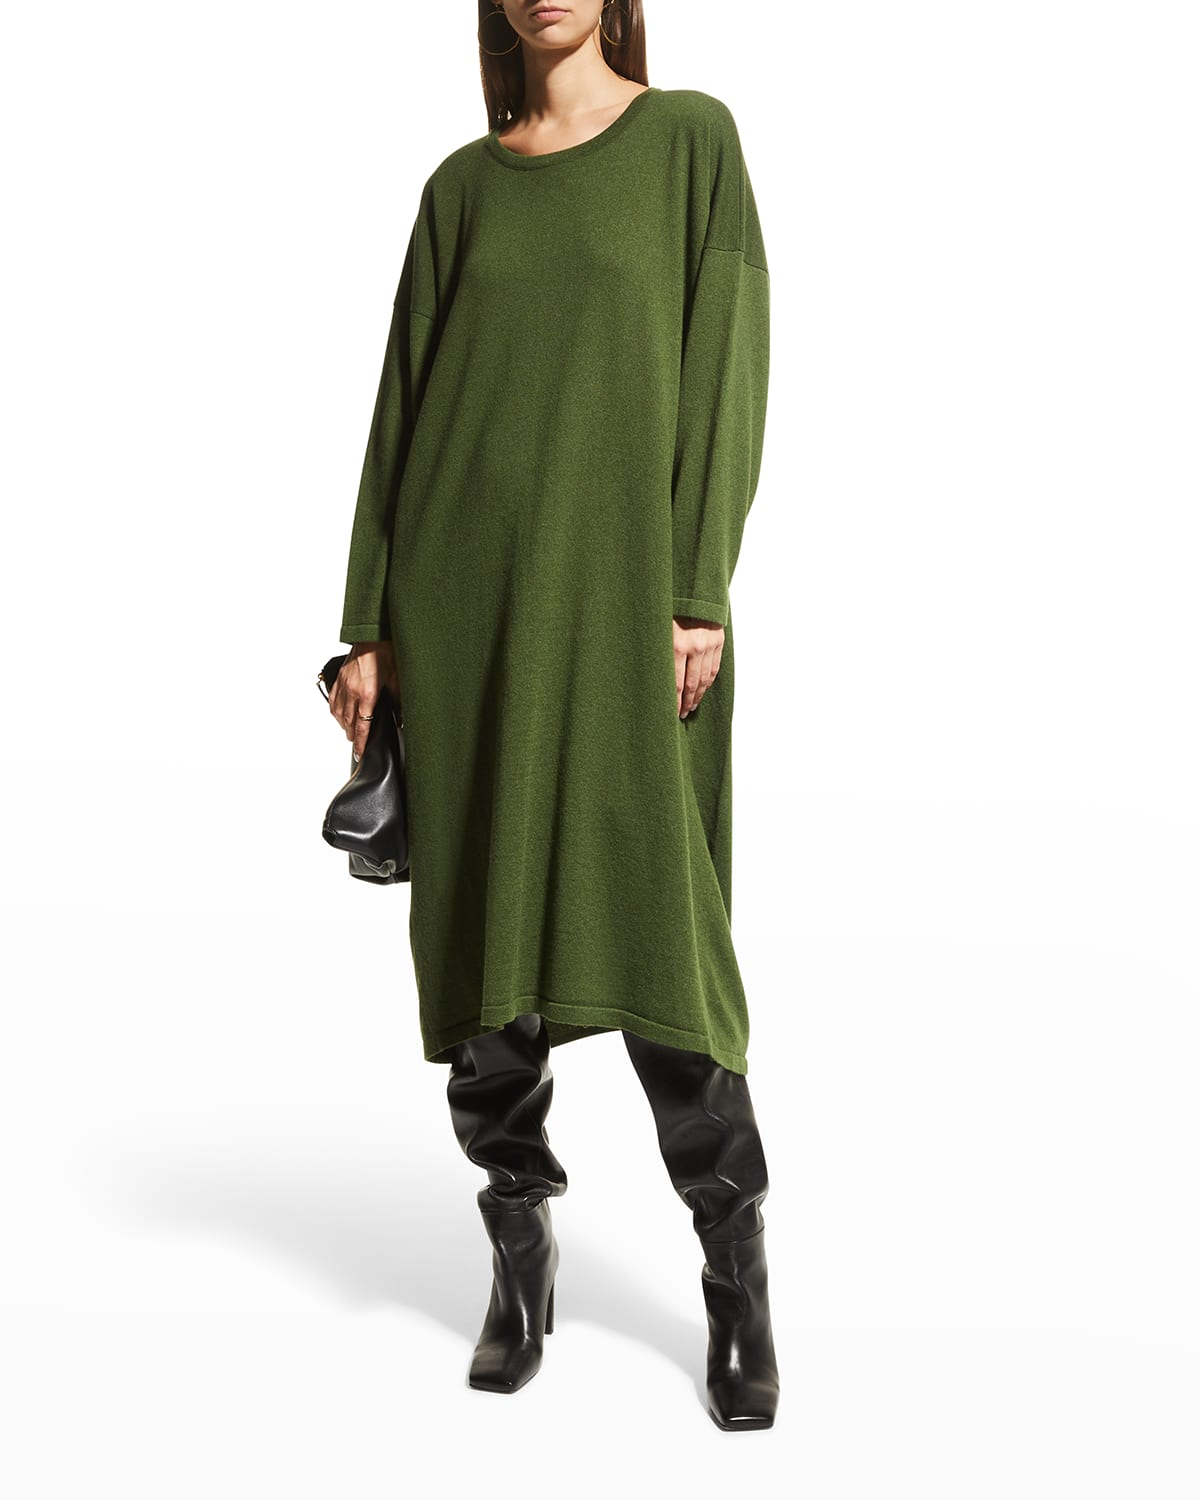 Angled-to-Front Cashmere Dress